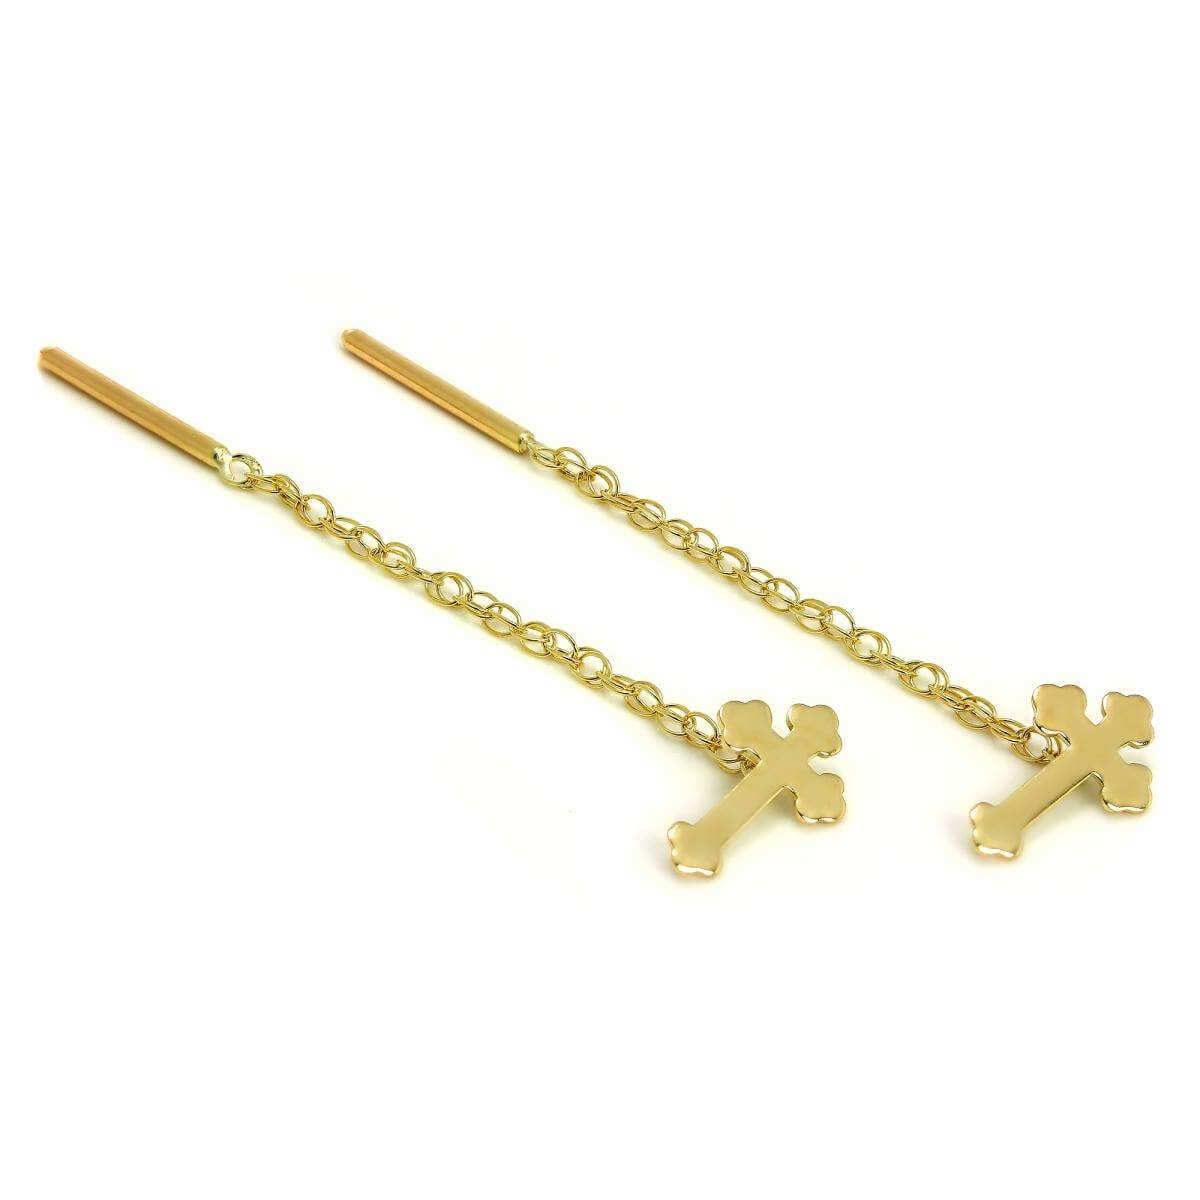 9ct Gold Gothic Cross Pull Through Chain Earrings